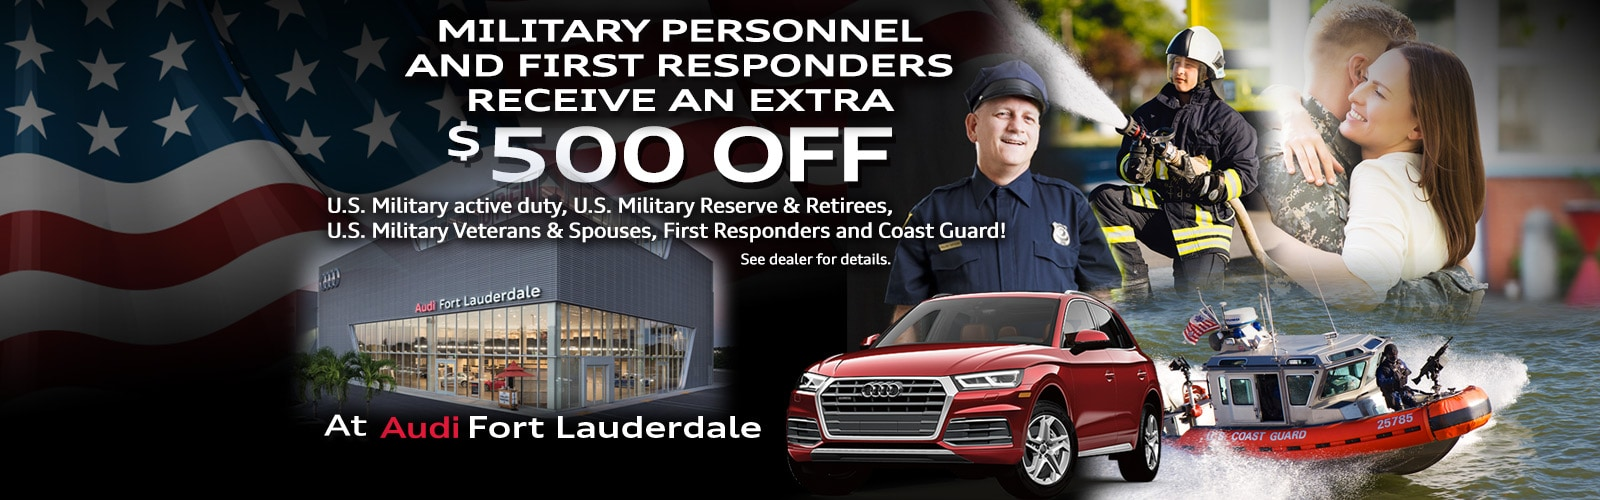 Audi Fort Lauderdale New Audi Dealership Serving Plantation - Audi dealers in south florida